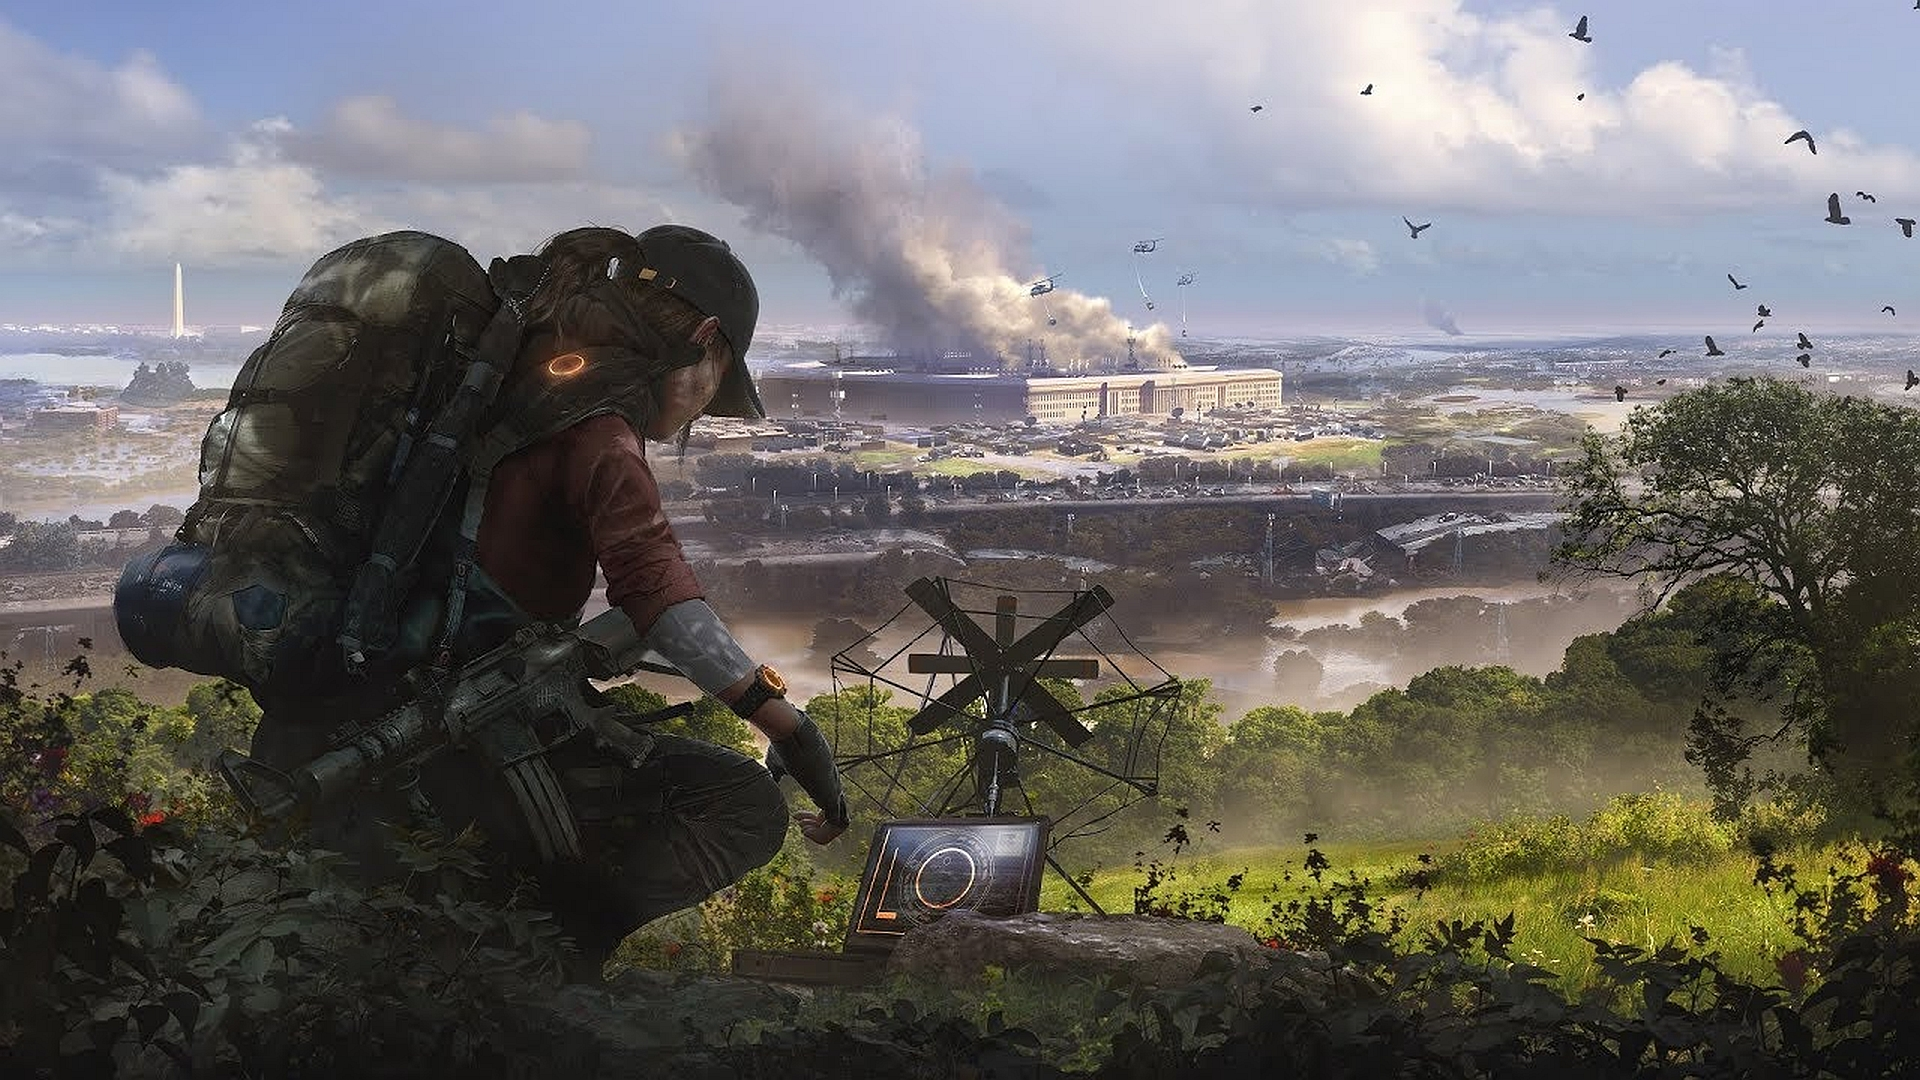 The Division 2 Update 6 Goes Live Tomorrow Patch Notes Already